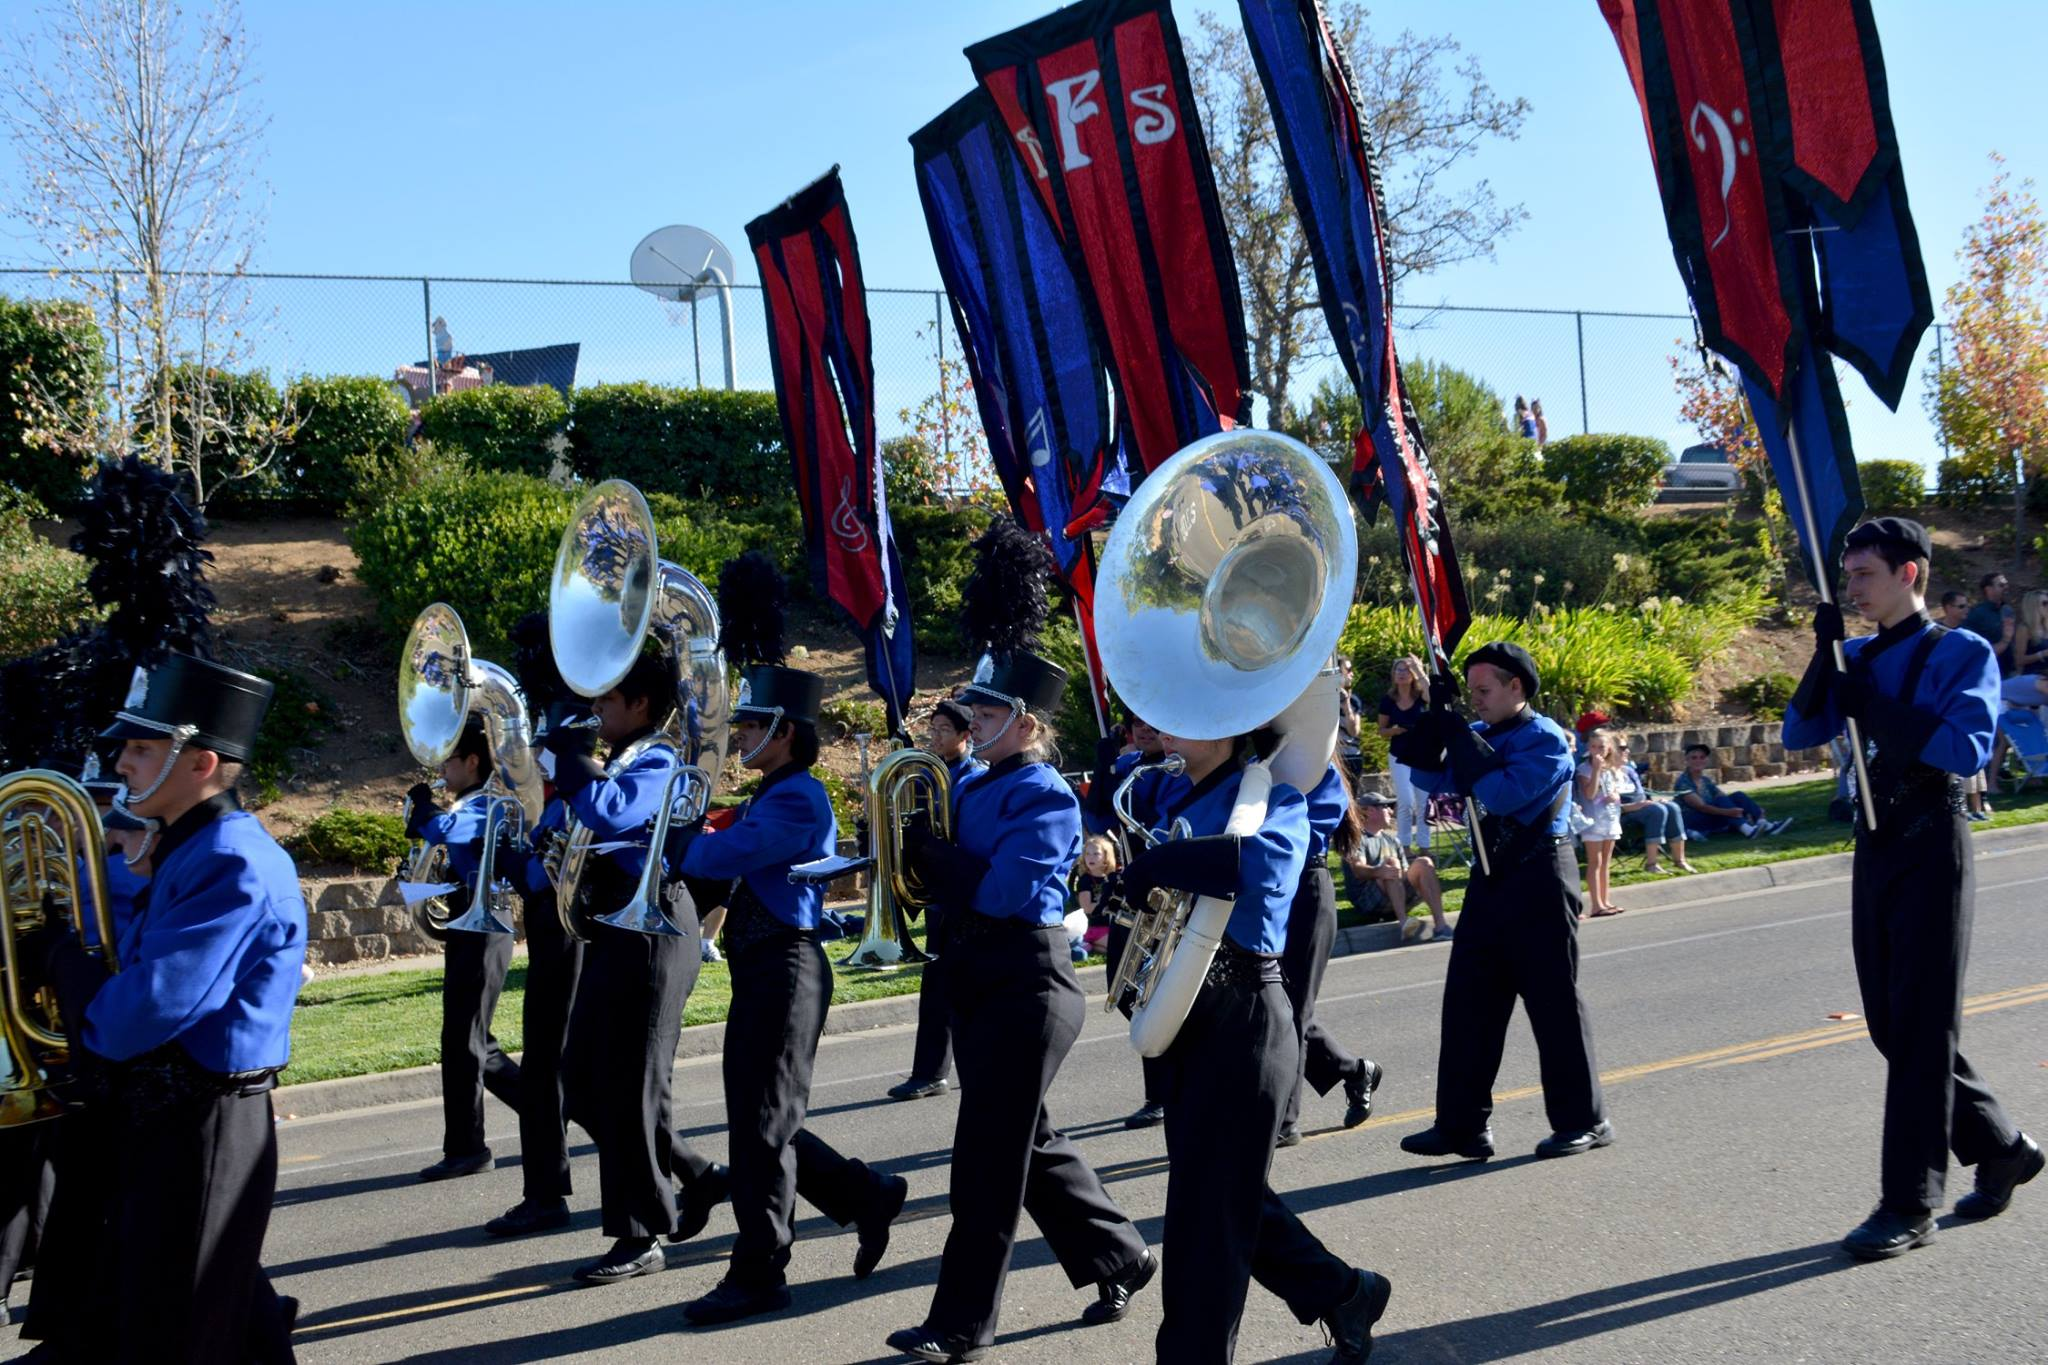 MB homecoming parade 2016.tubas.jpg